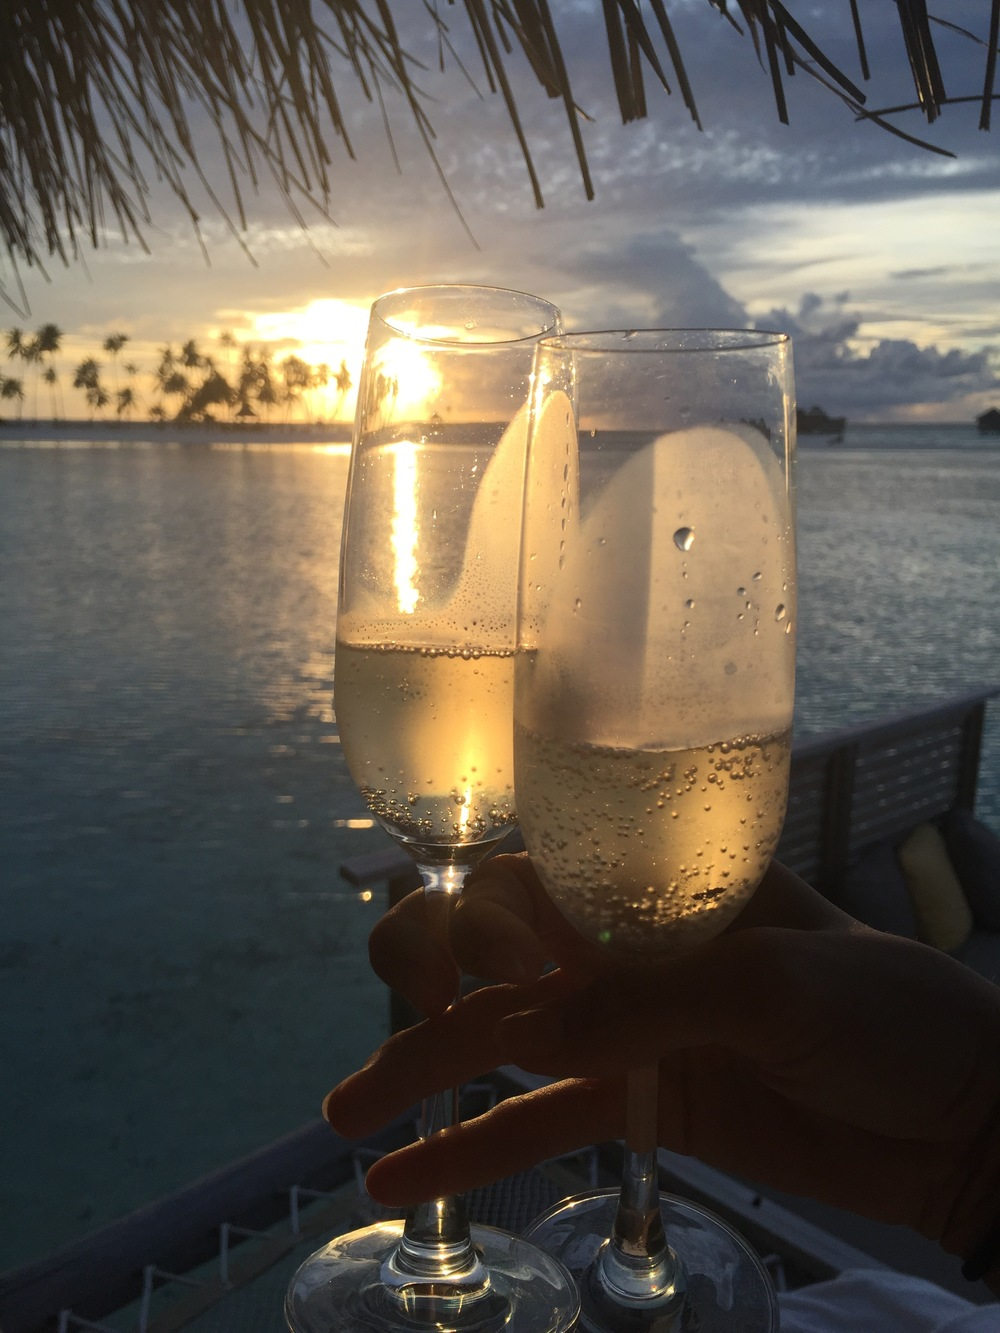 Cheers to an incredible honeymoon!